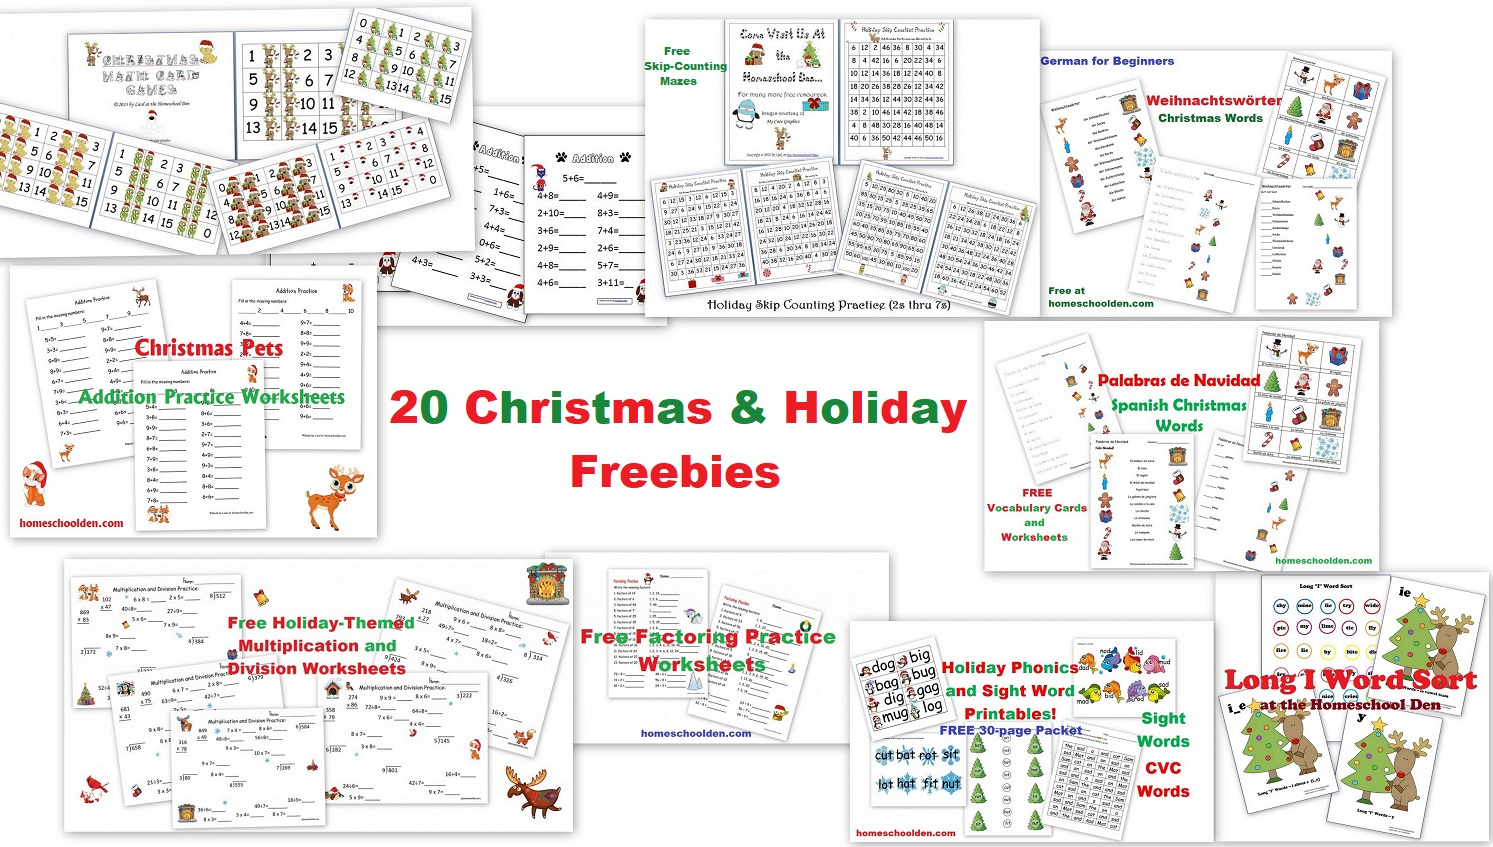 20 Free Christmas And Holiday Printables - Homeschool Den - Free Homeschool Printable Worksheets